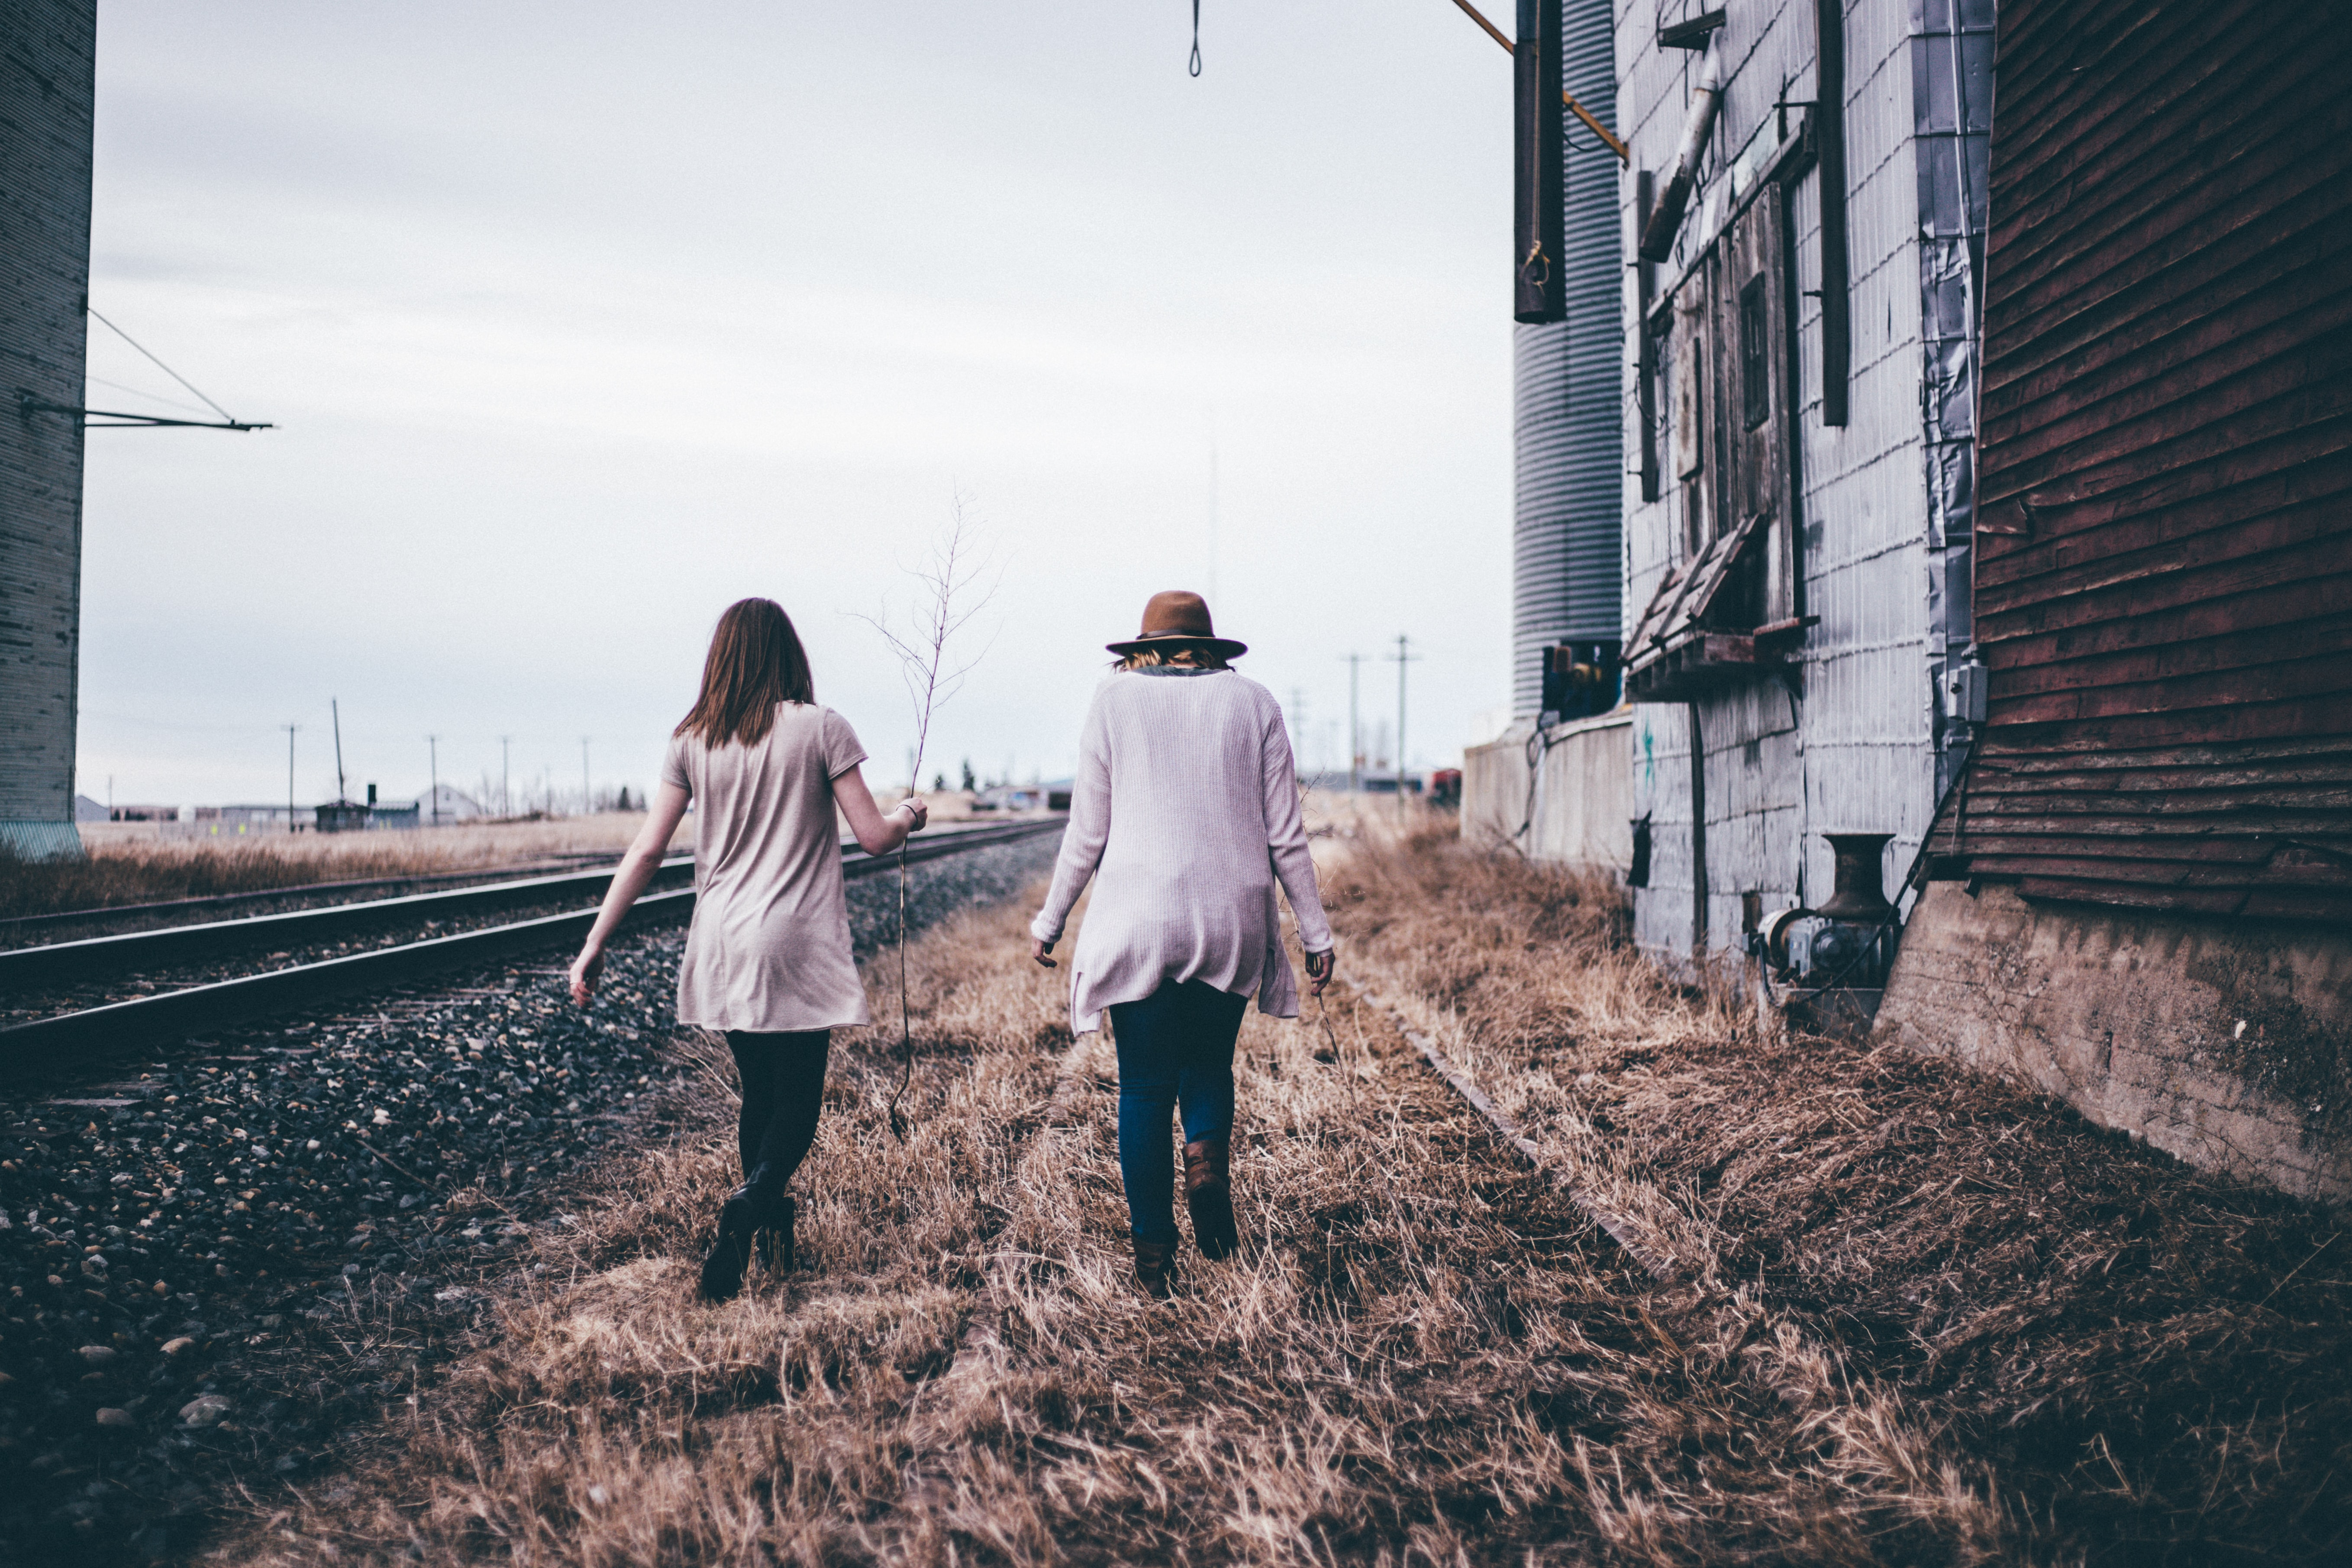 Two friends walk by abandoned railroad tracks in fall